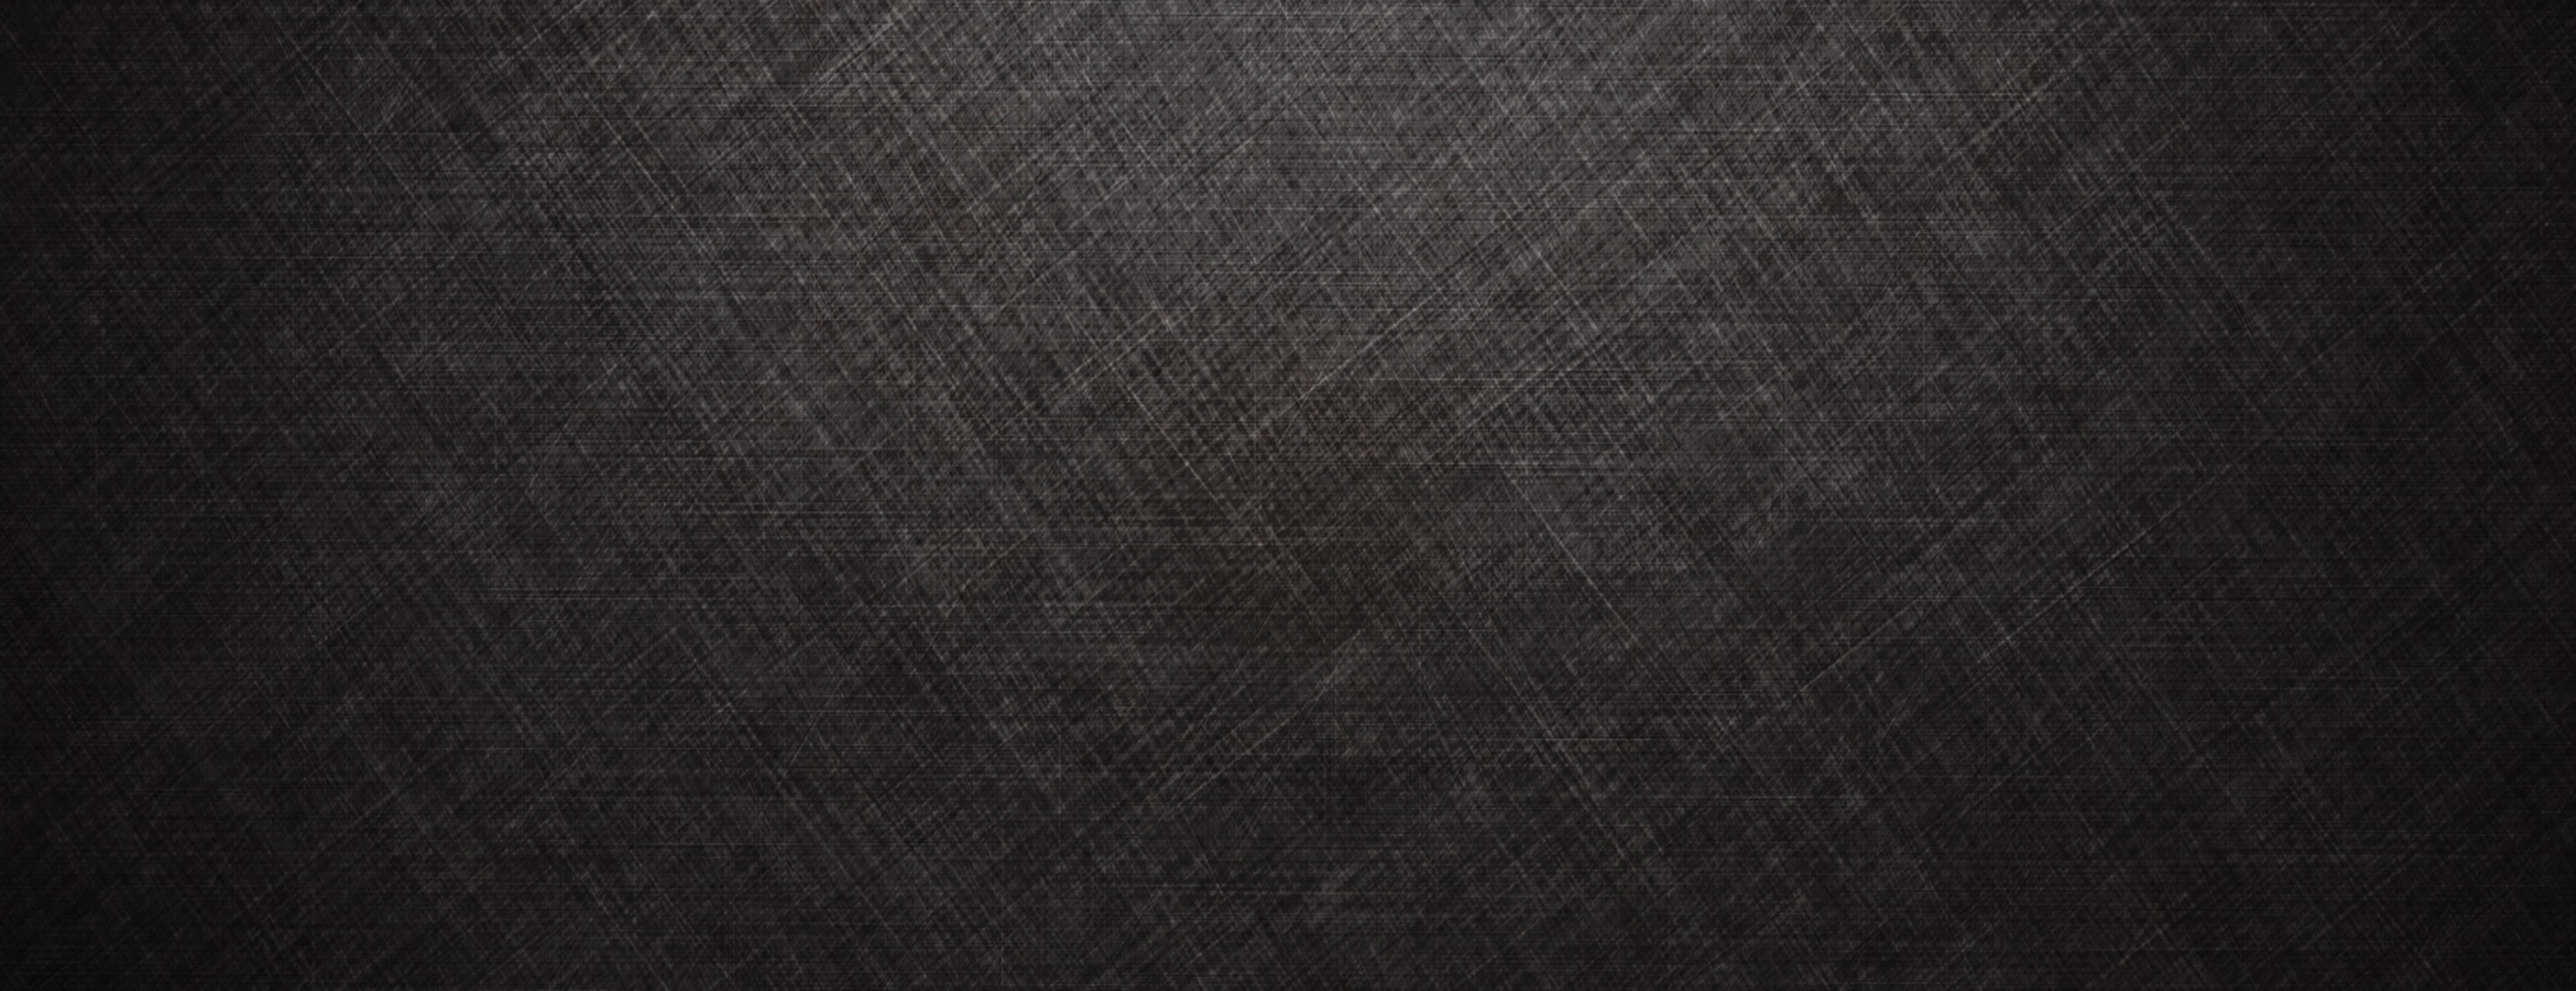 black-pattern-bg